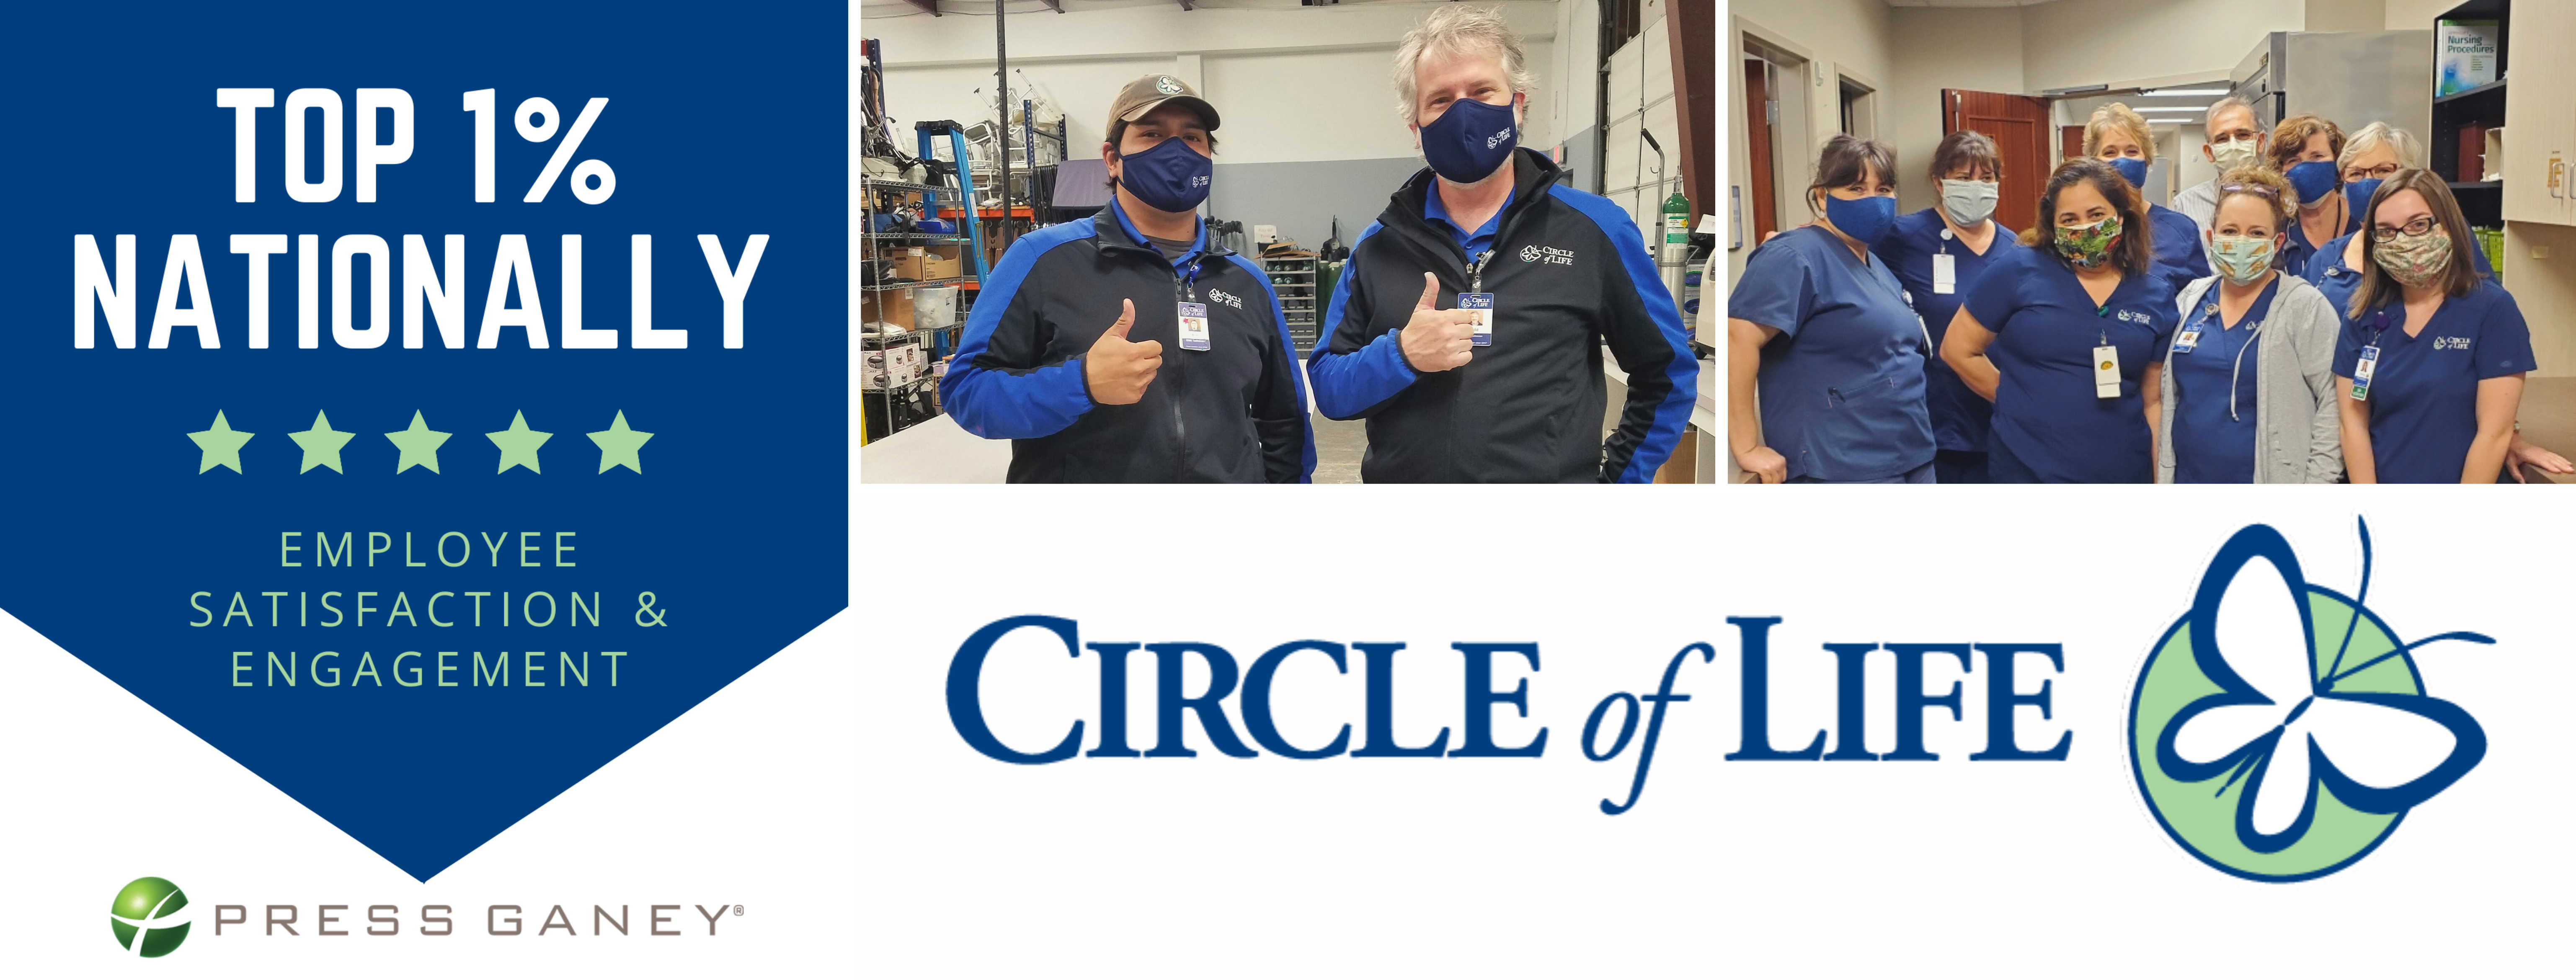 Circle of Life Receives Top Scores in Employee Engagement and Satisfaction